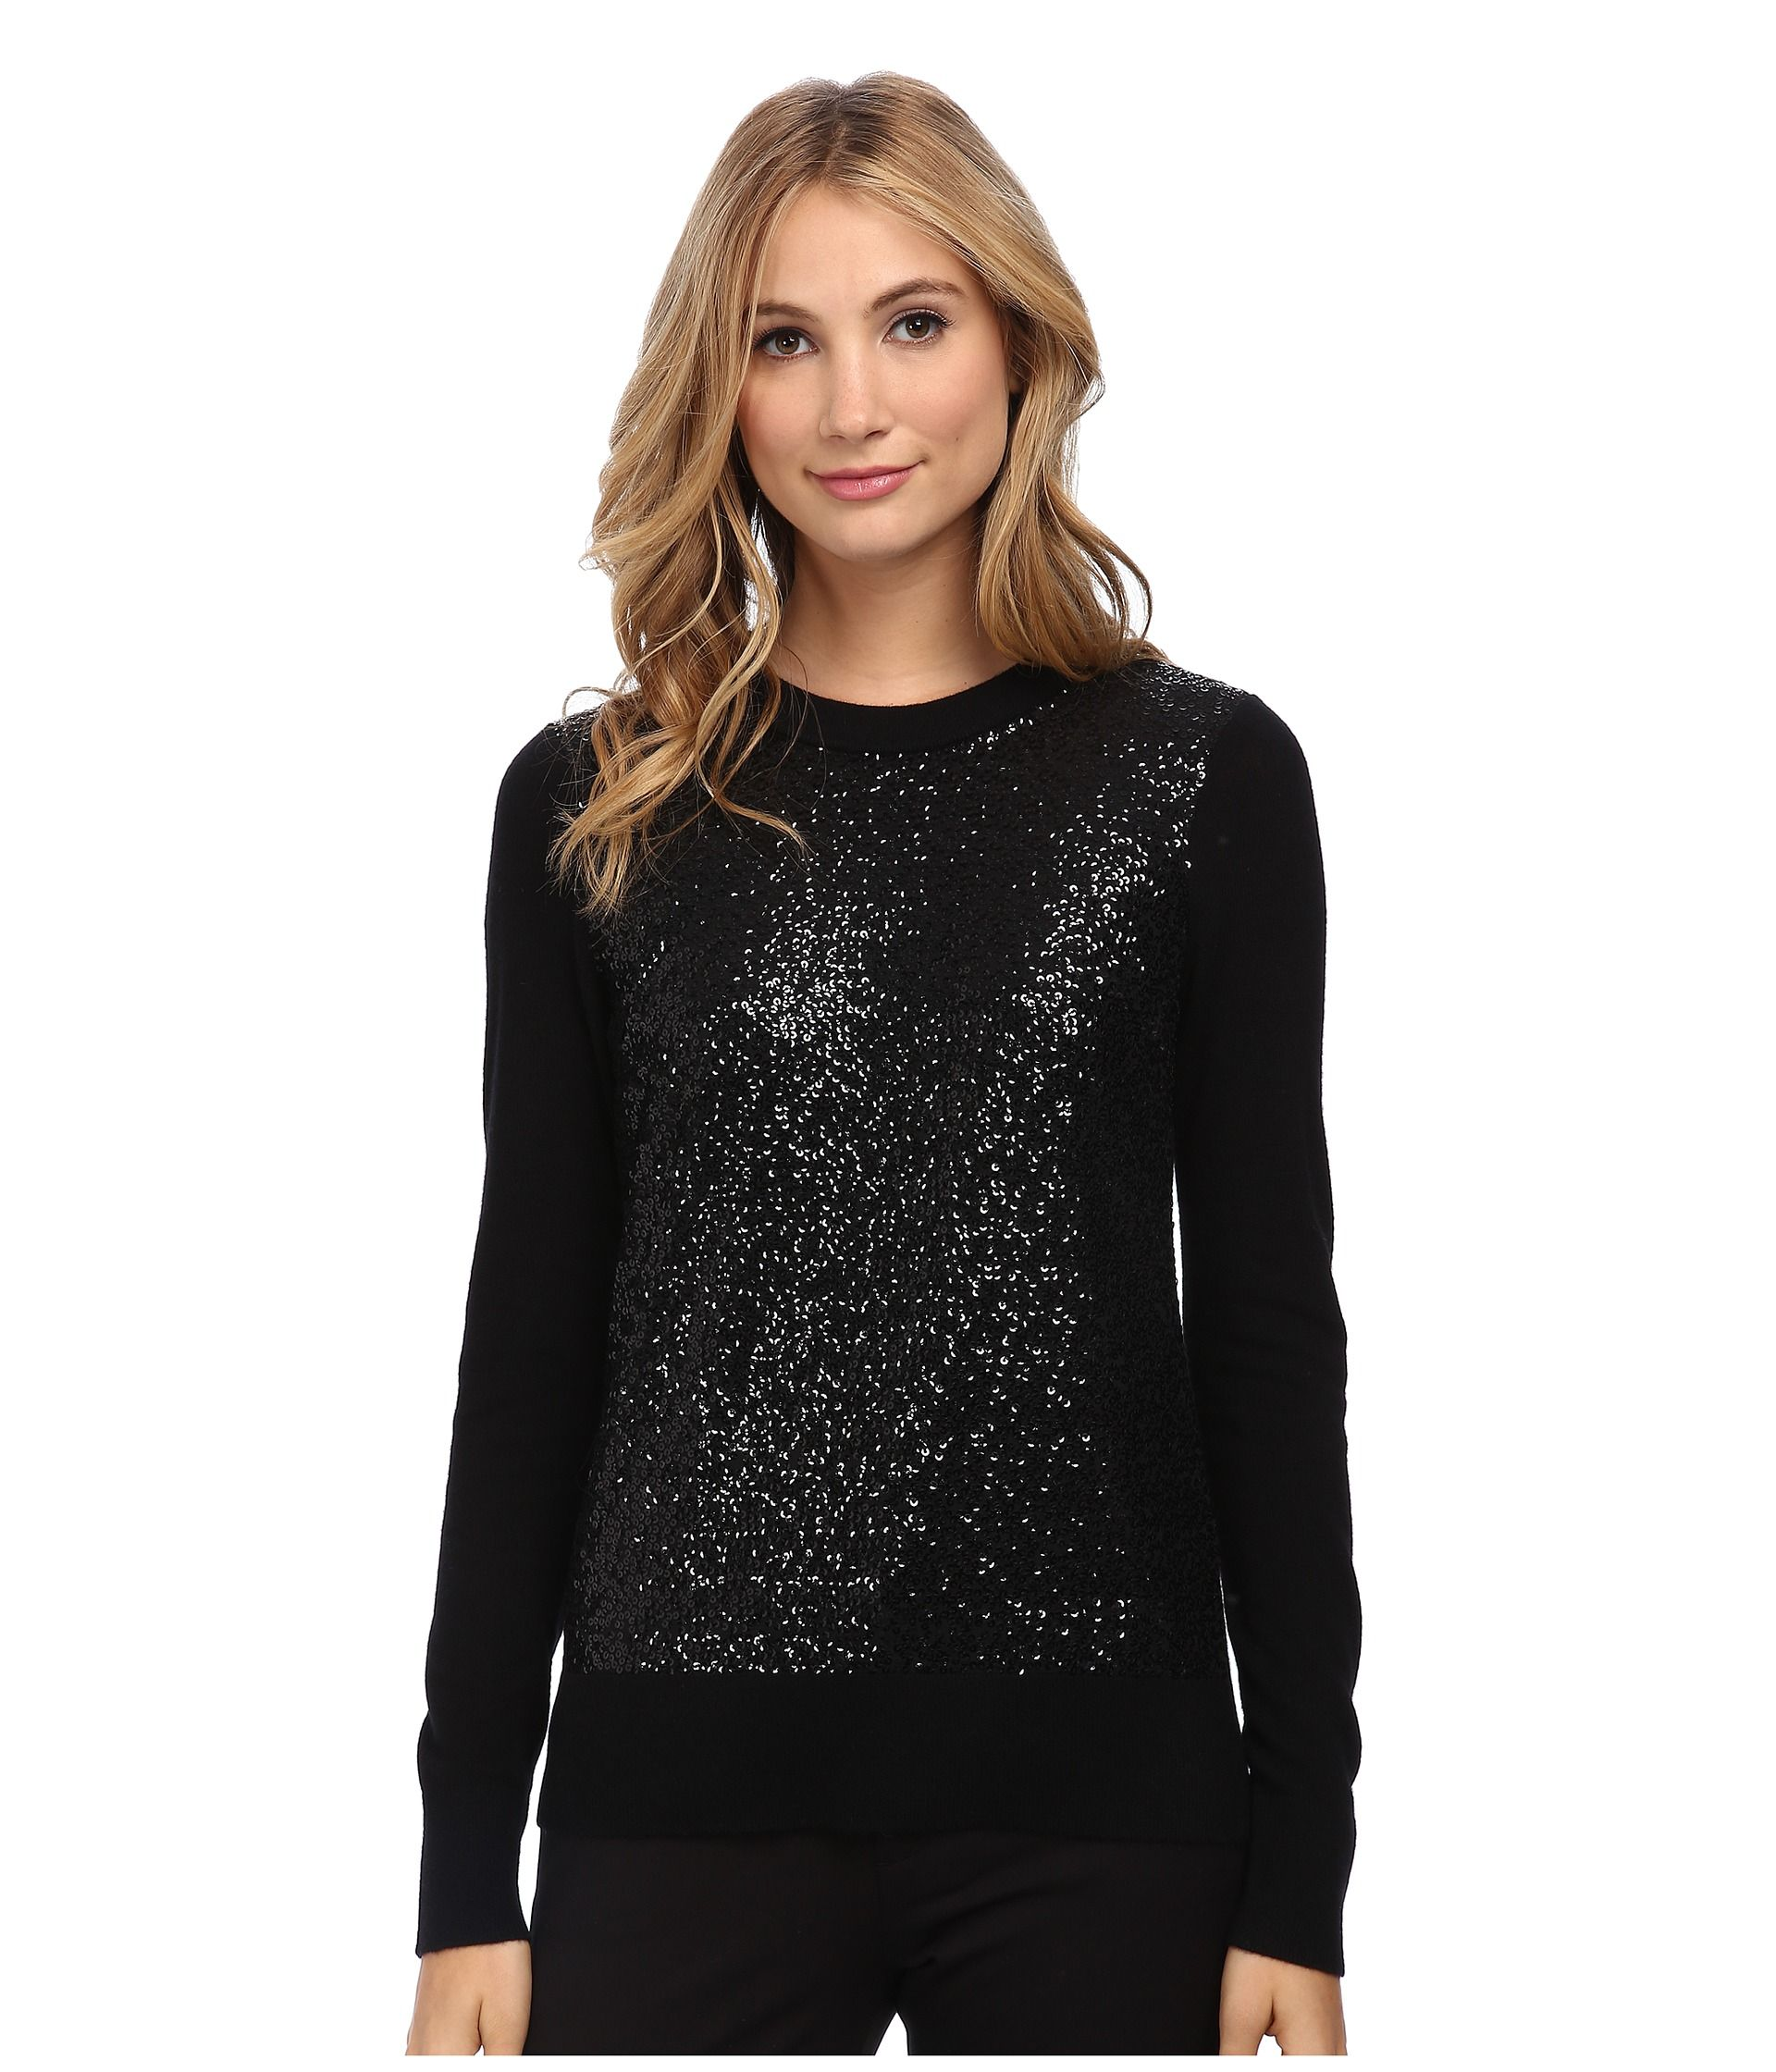 Kate Spade New York Fluffy Wool Sequin Sweater | Dressy Occasion ...